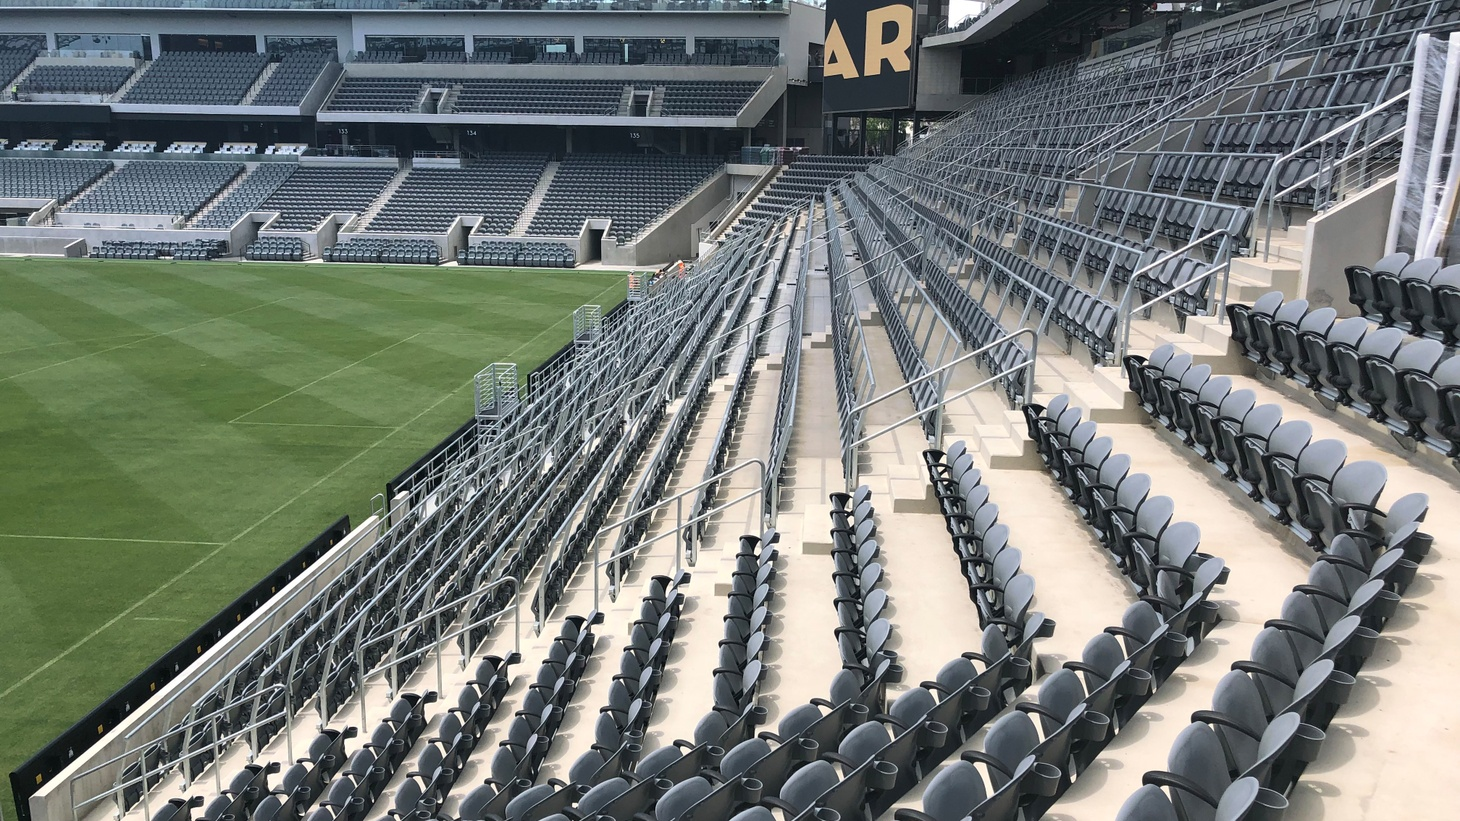 This weekend, the Los Angeles Football Club, L.A.'s new professional soccer franchise, will play its first game in its new home, the Banc of California Stadium.